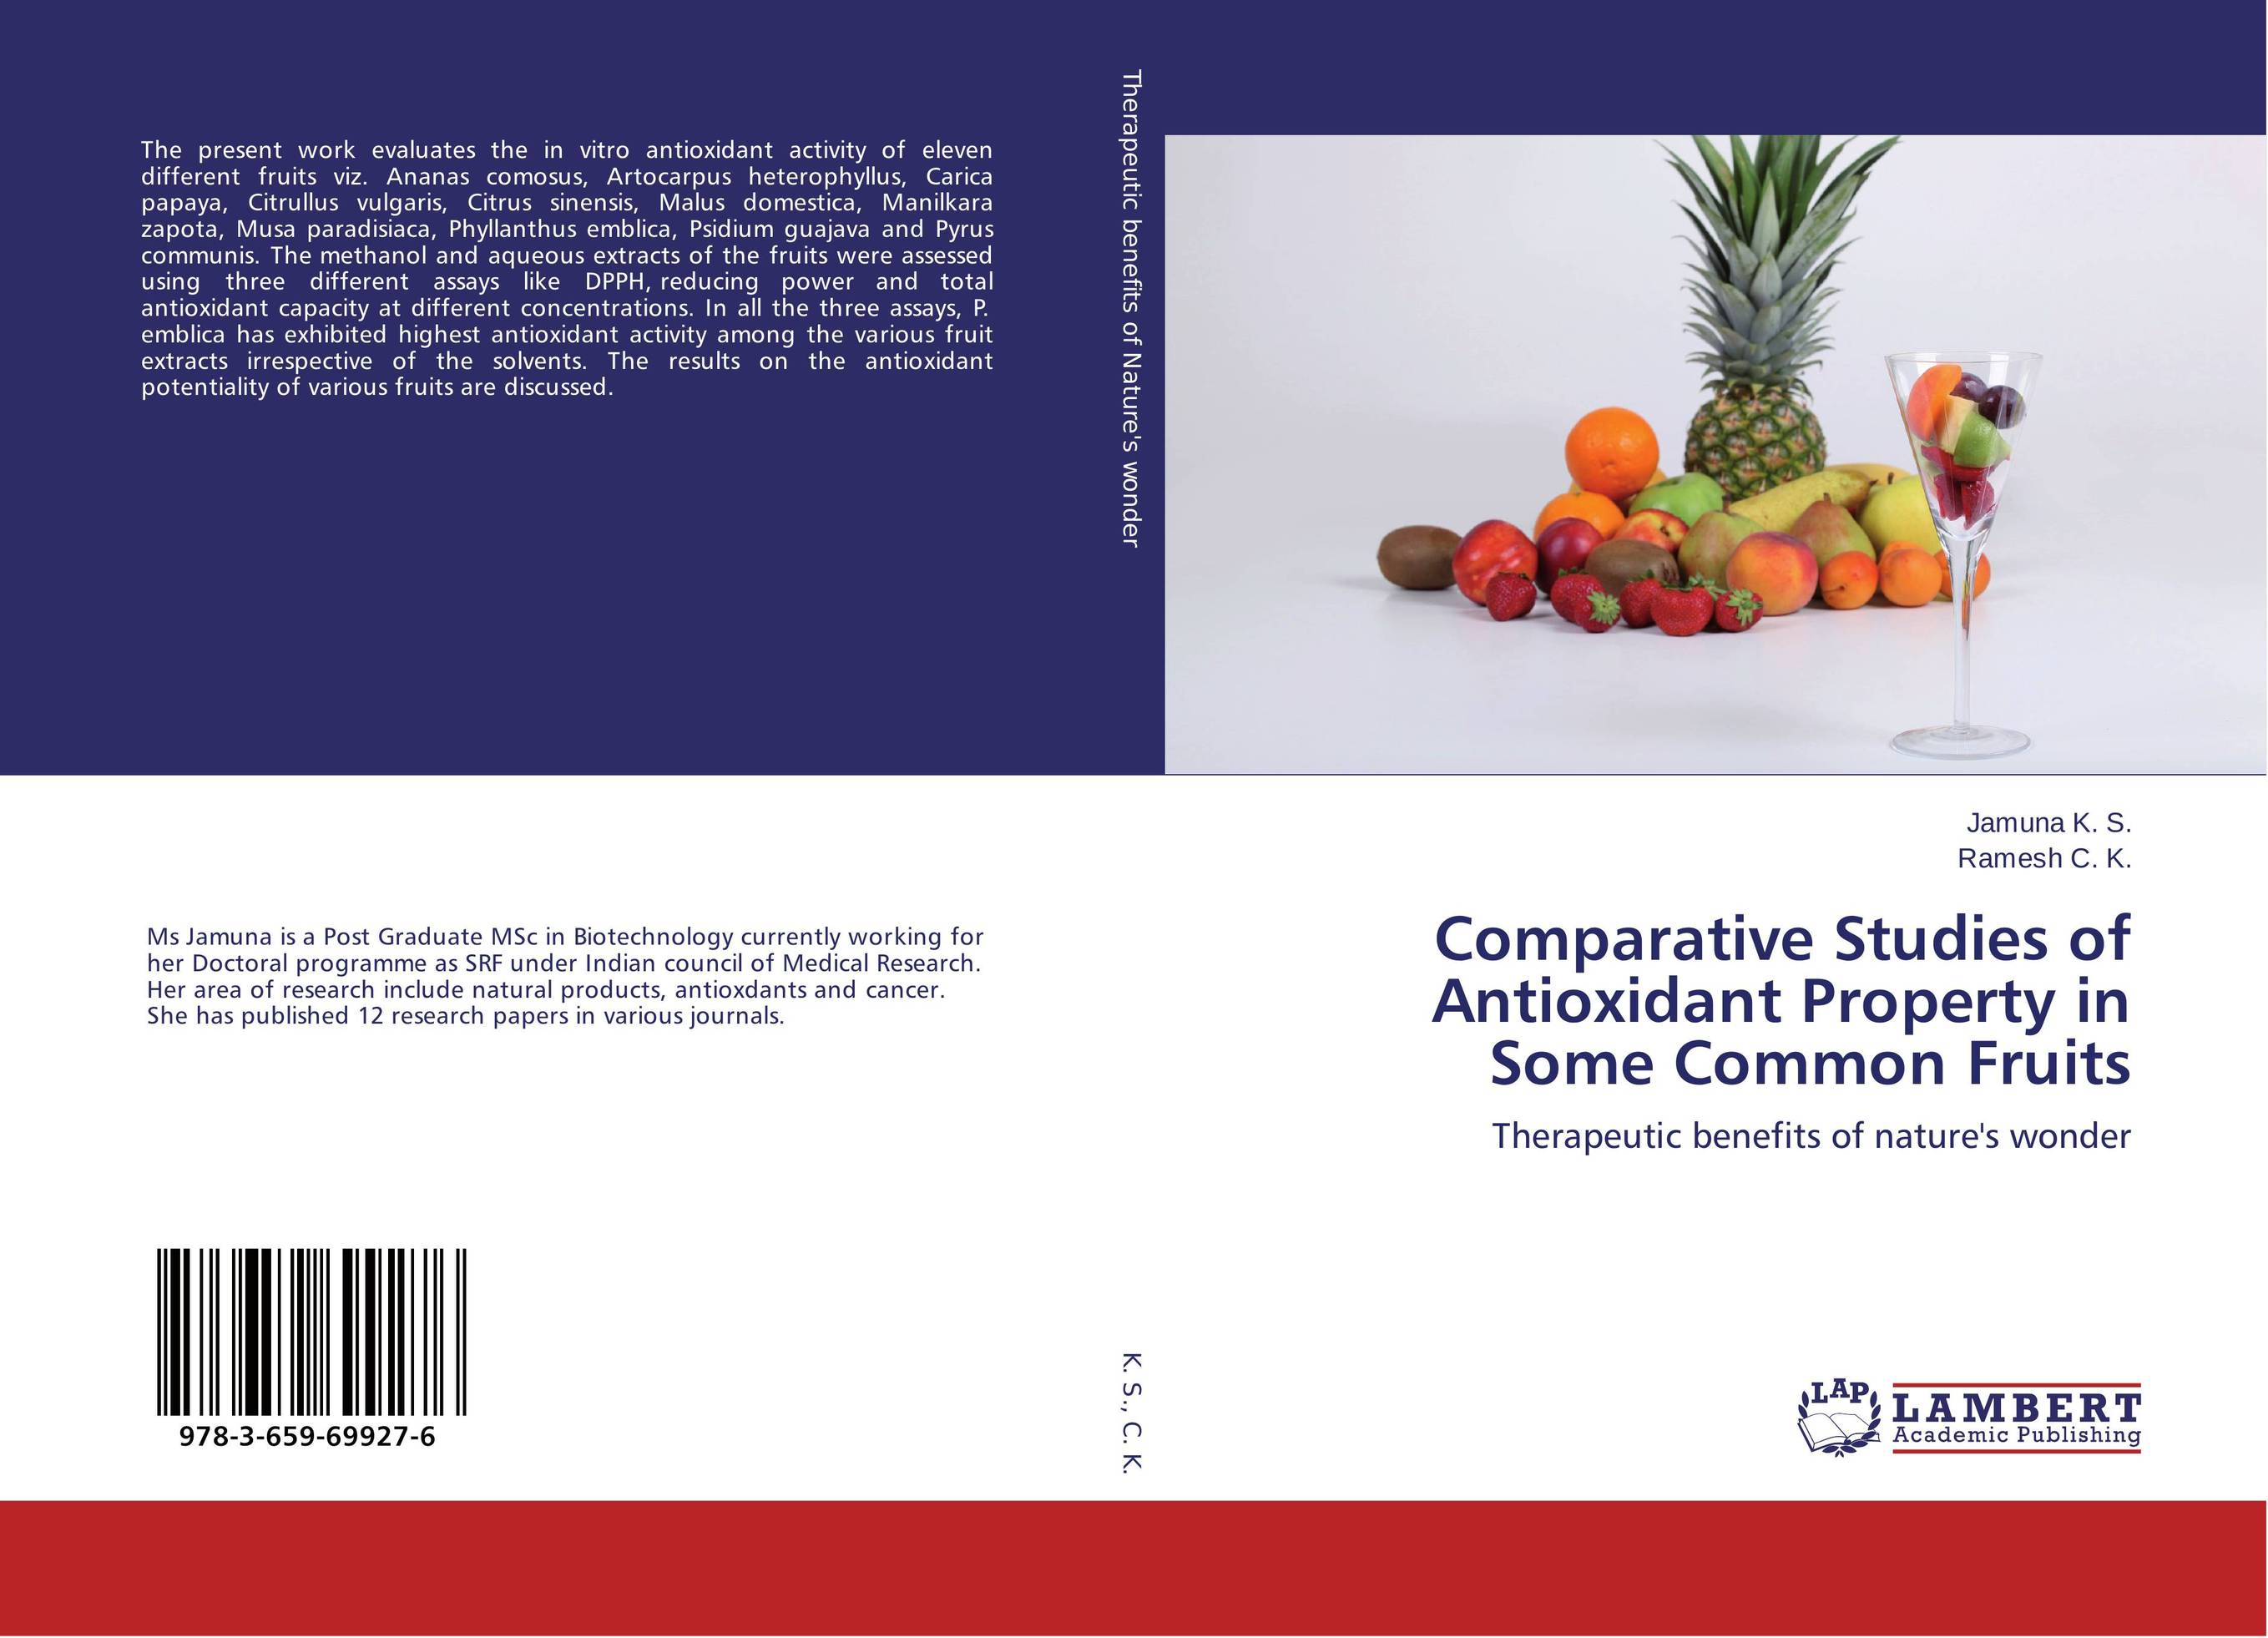 Comparative Studies of Antioxidant Property in Some Common Fruits studies on the antioxidant activity of indigofera hochstetteri baker